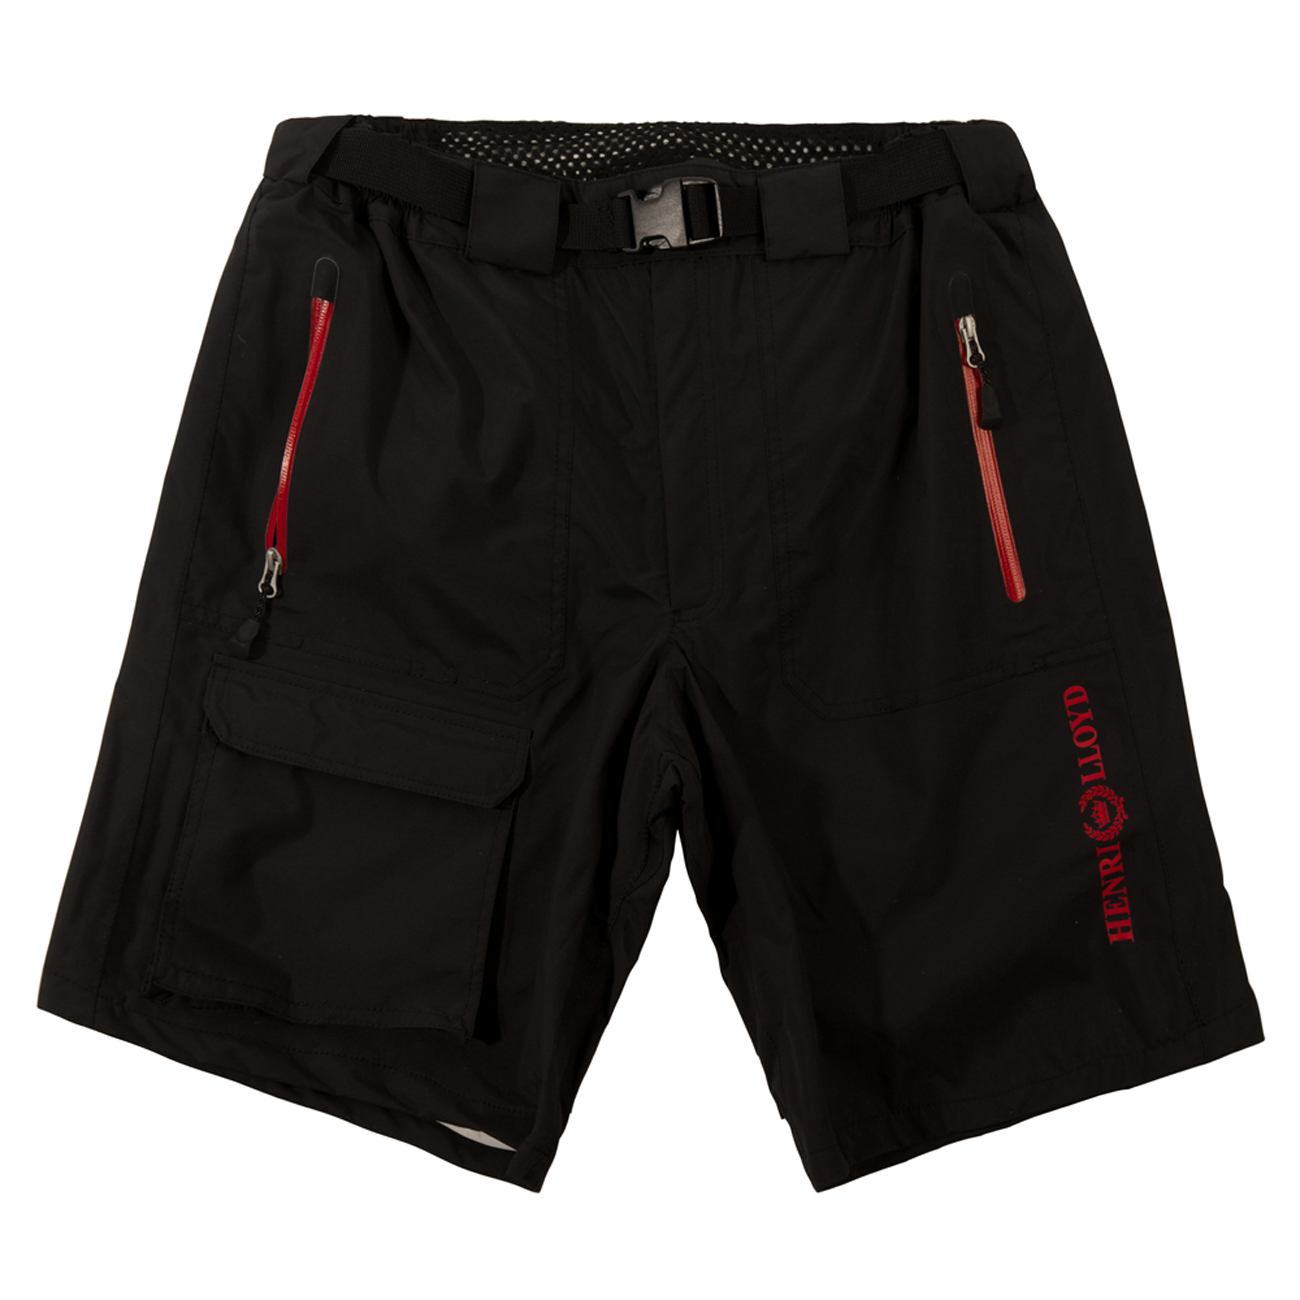 HENRI LLOYD COBRA DINGHY SHORT (Y10124)